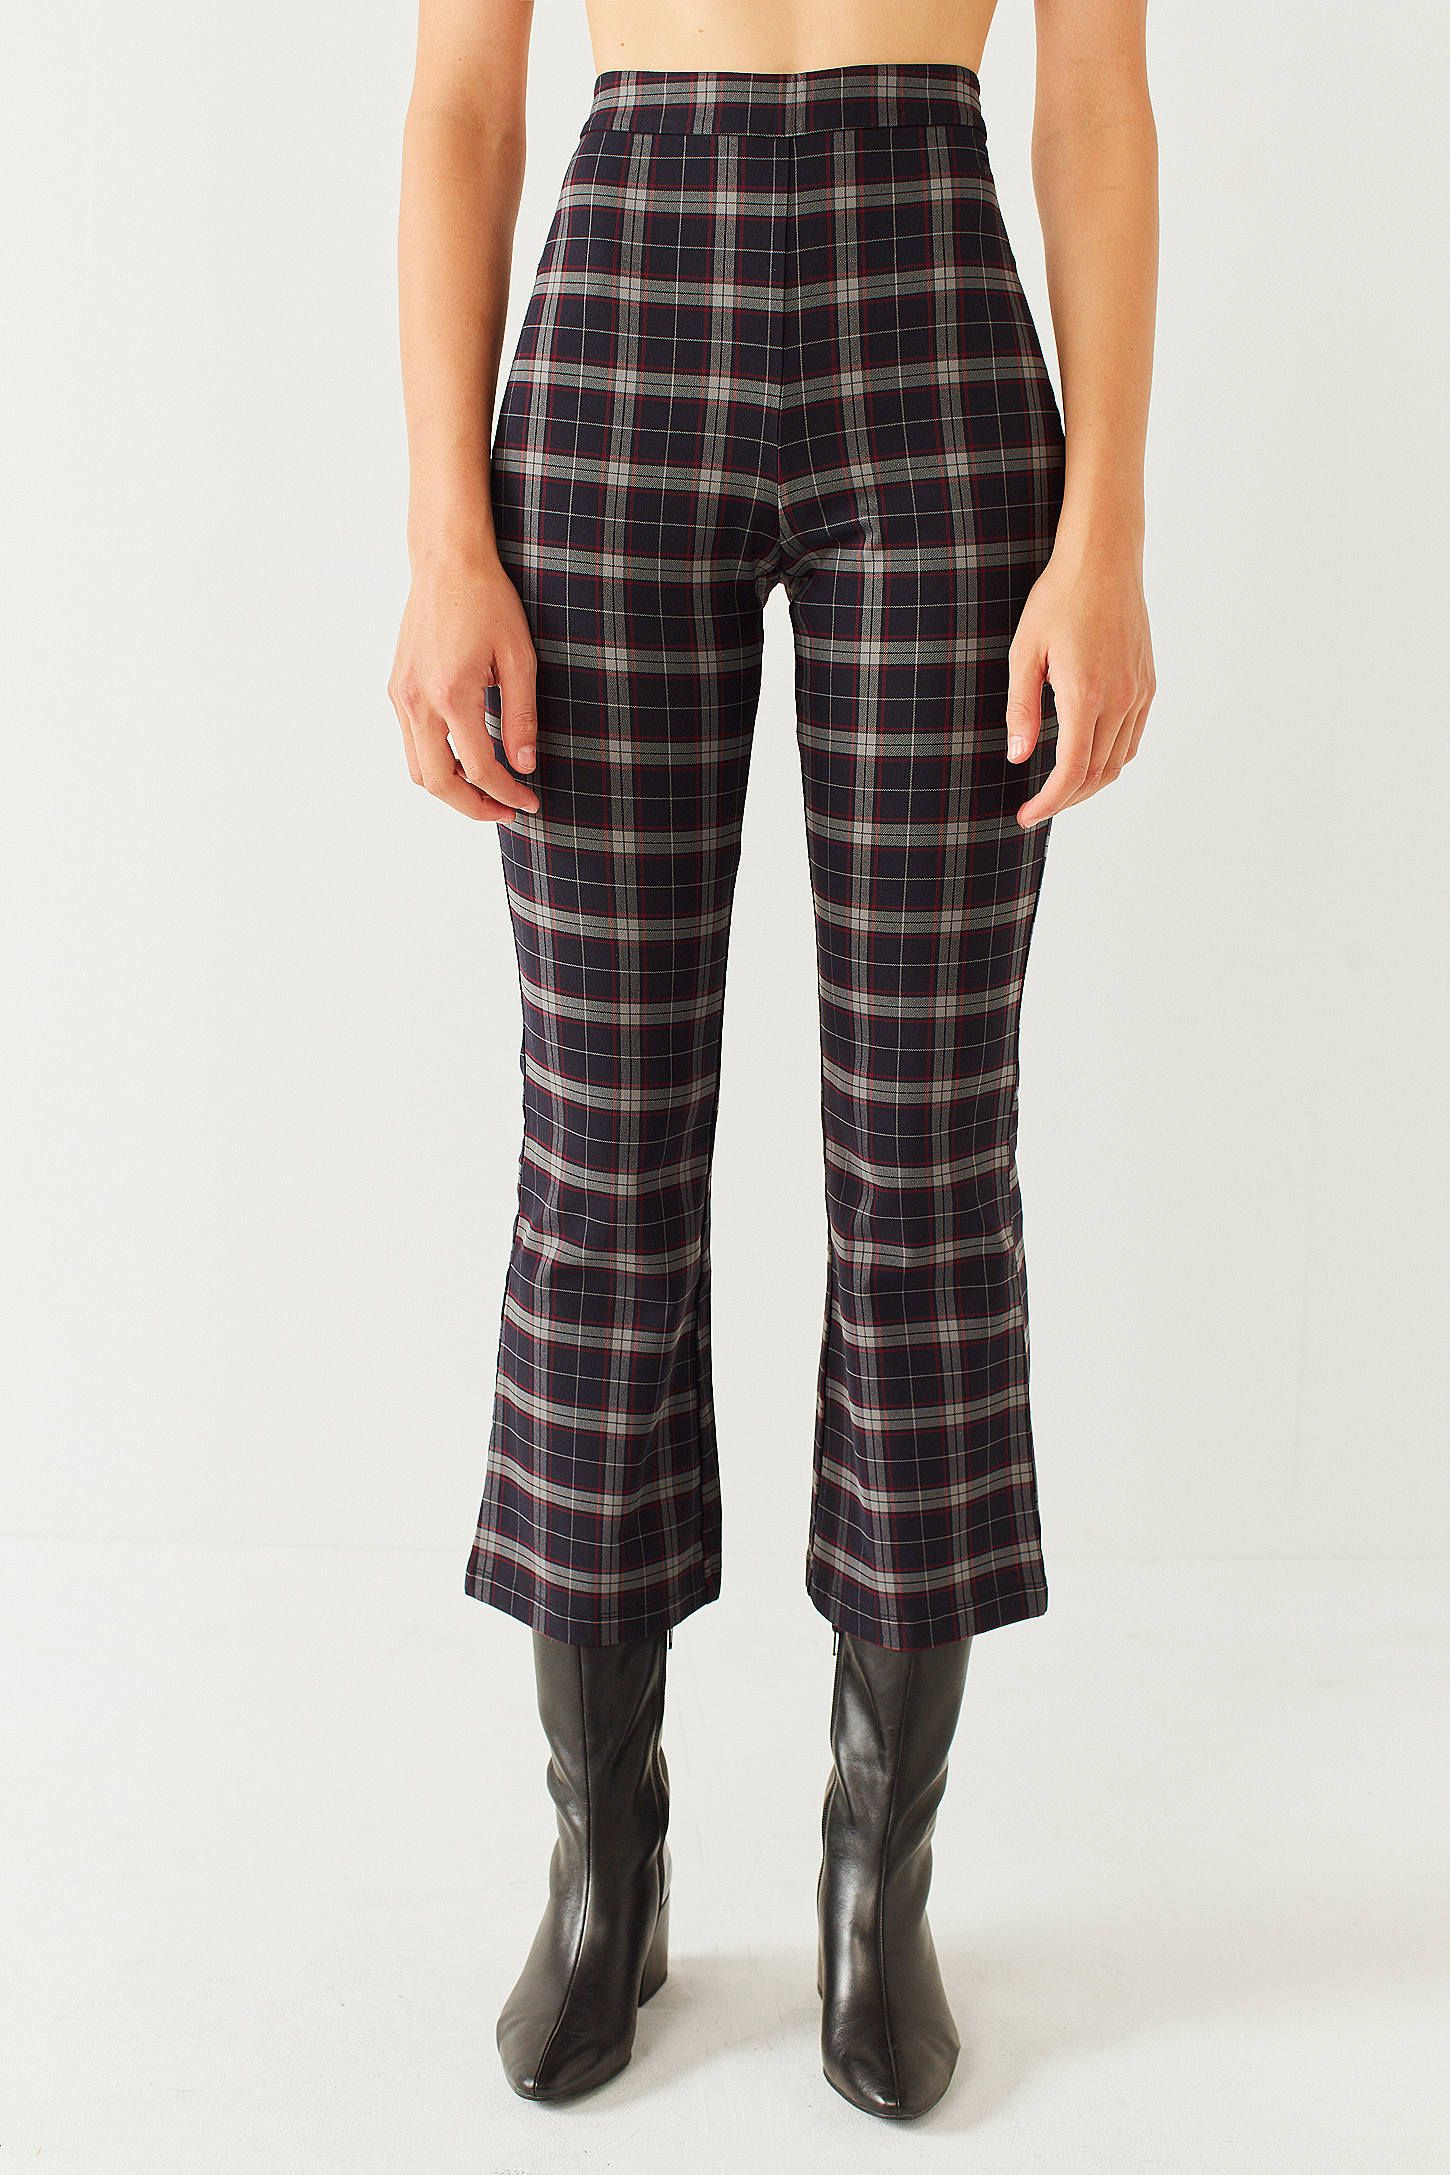 bf71dde185aa6 Shop UO Lola Plaid Kick Flare Pant at Urban Outfitters today. We carry all  the latest styles